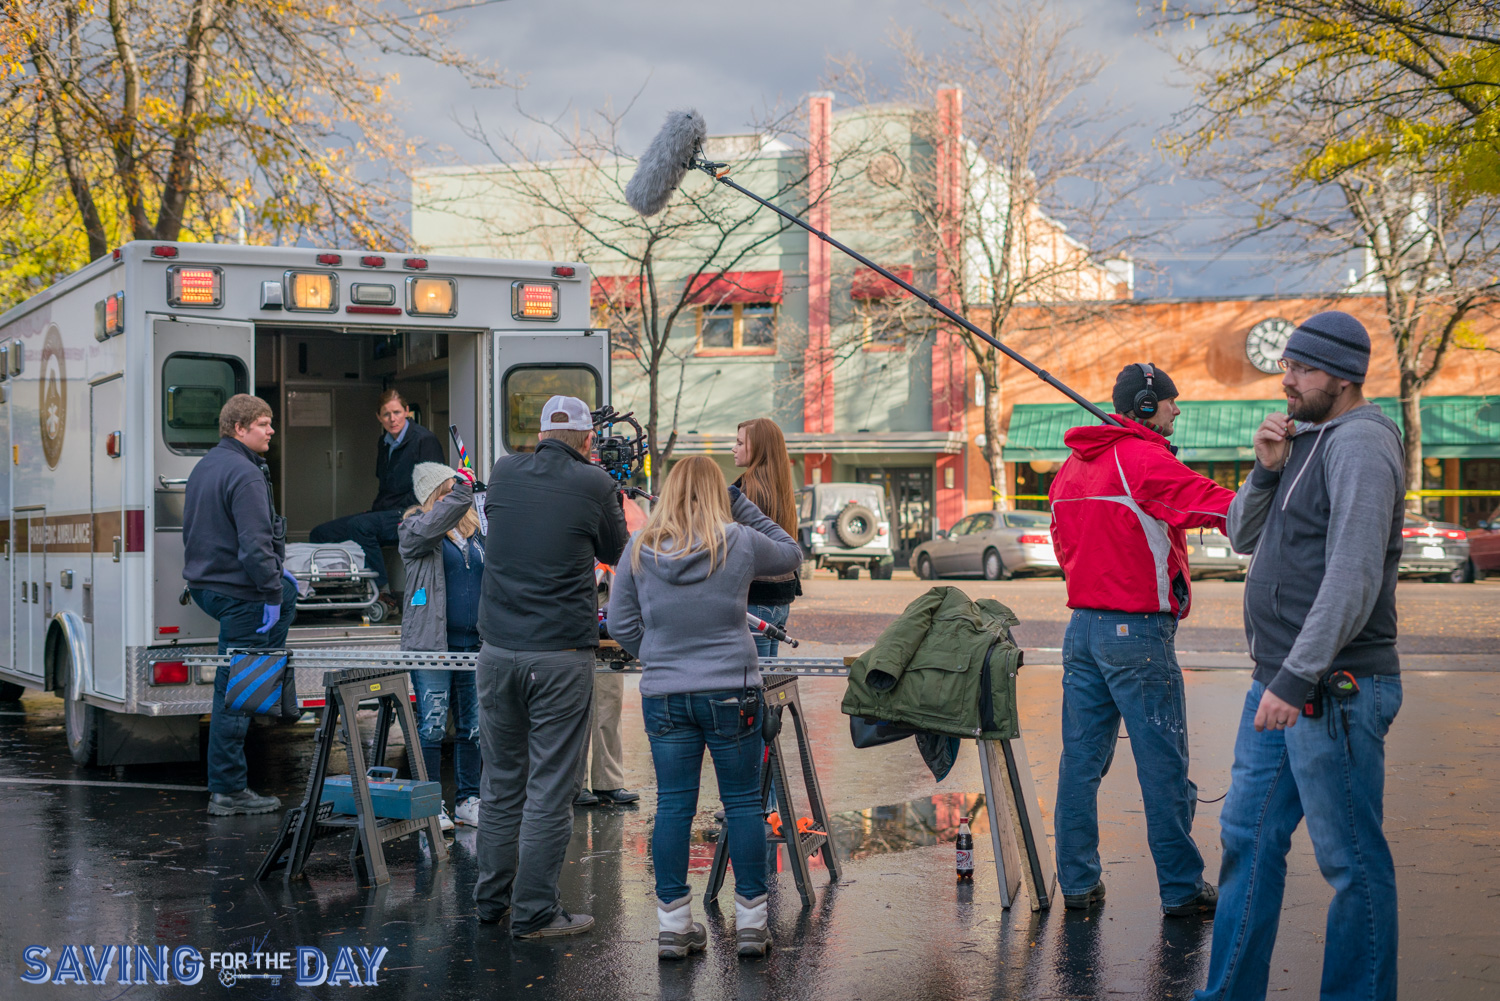 Film cast & crew shooting scene in the zombie segment of Saving For The Day in downtown Missoula Montana